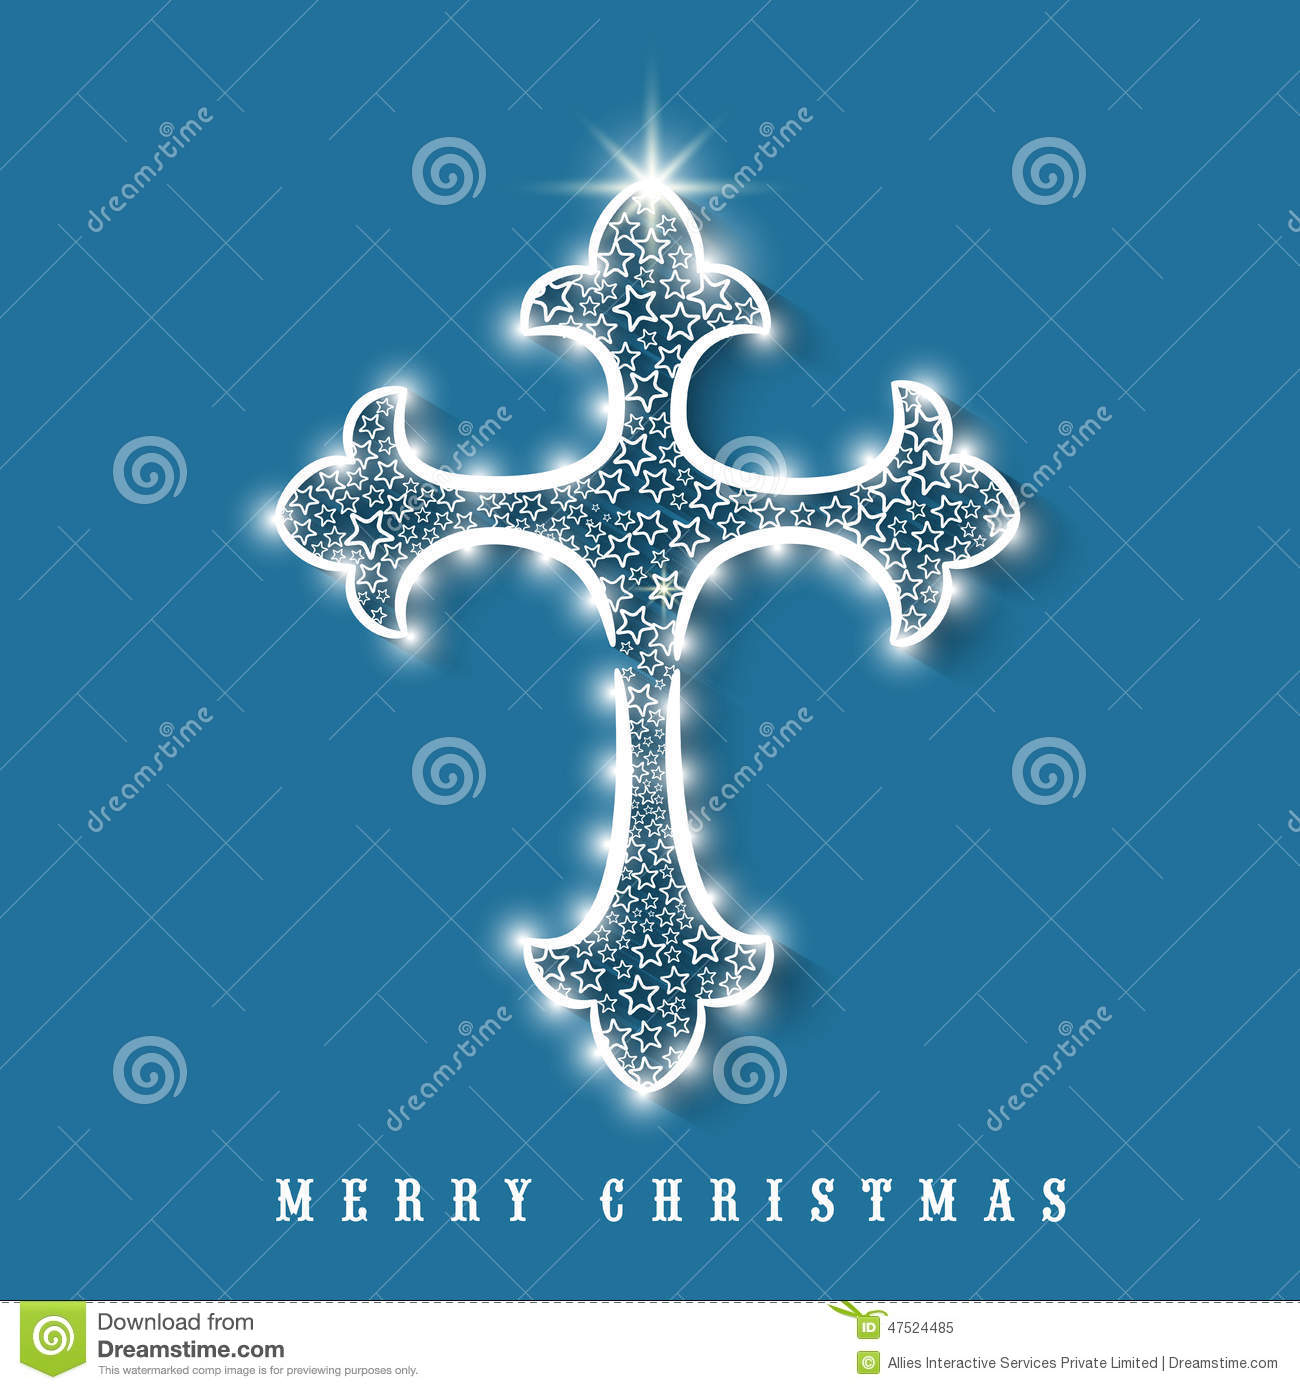 Merry christmas celebration with shiny cross stock illustration merry christmas celebration with shiny cross kristyandbryce Image collections